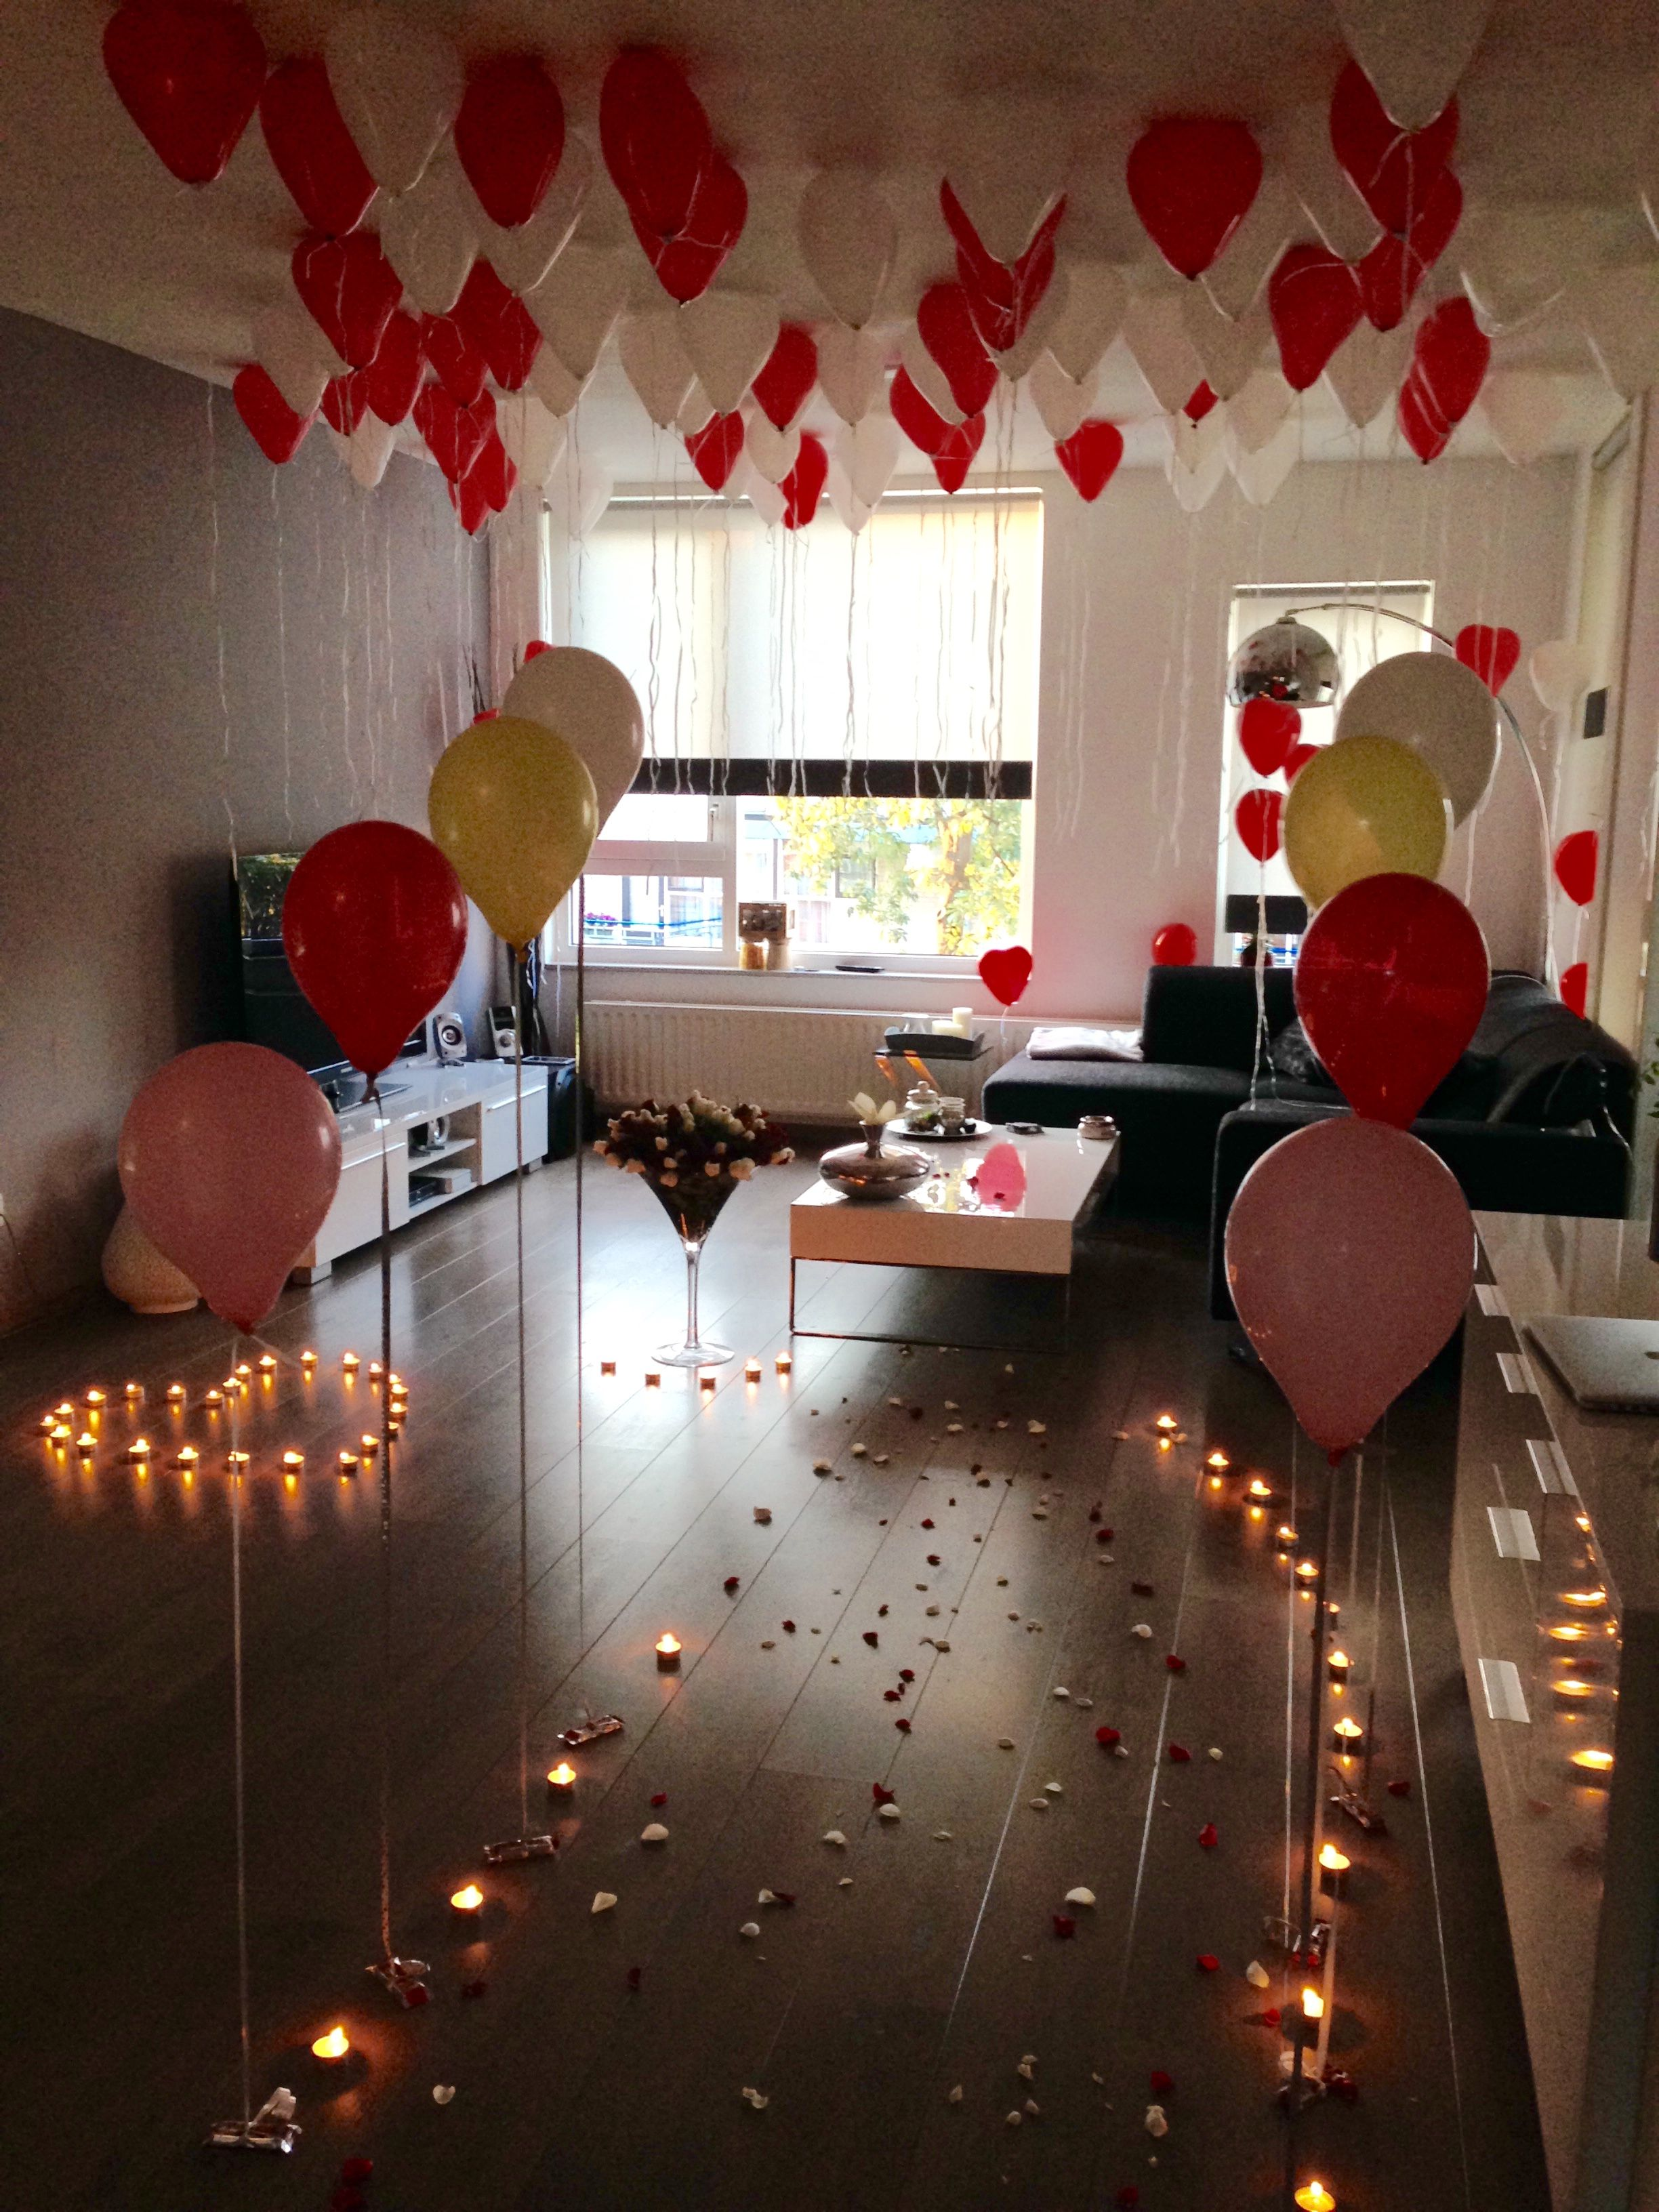 She said yes! #shesaidyes #gettingmarried #proposal # ...